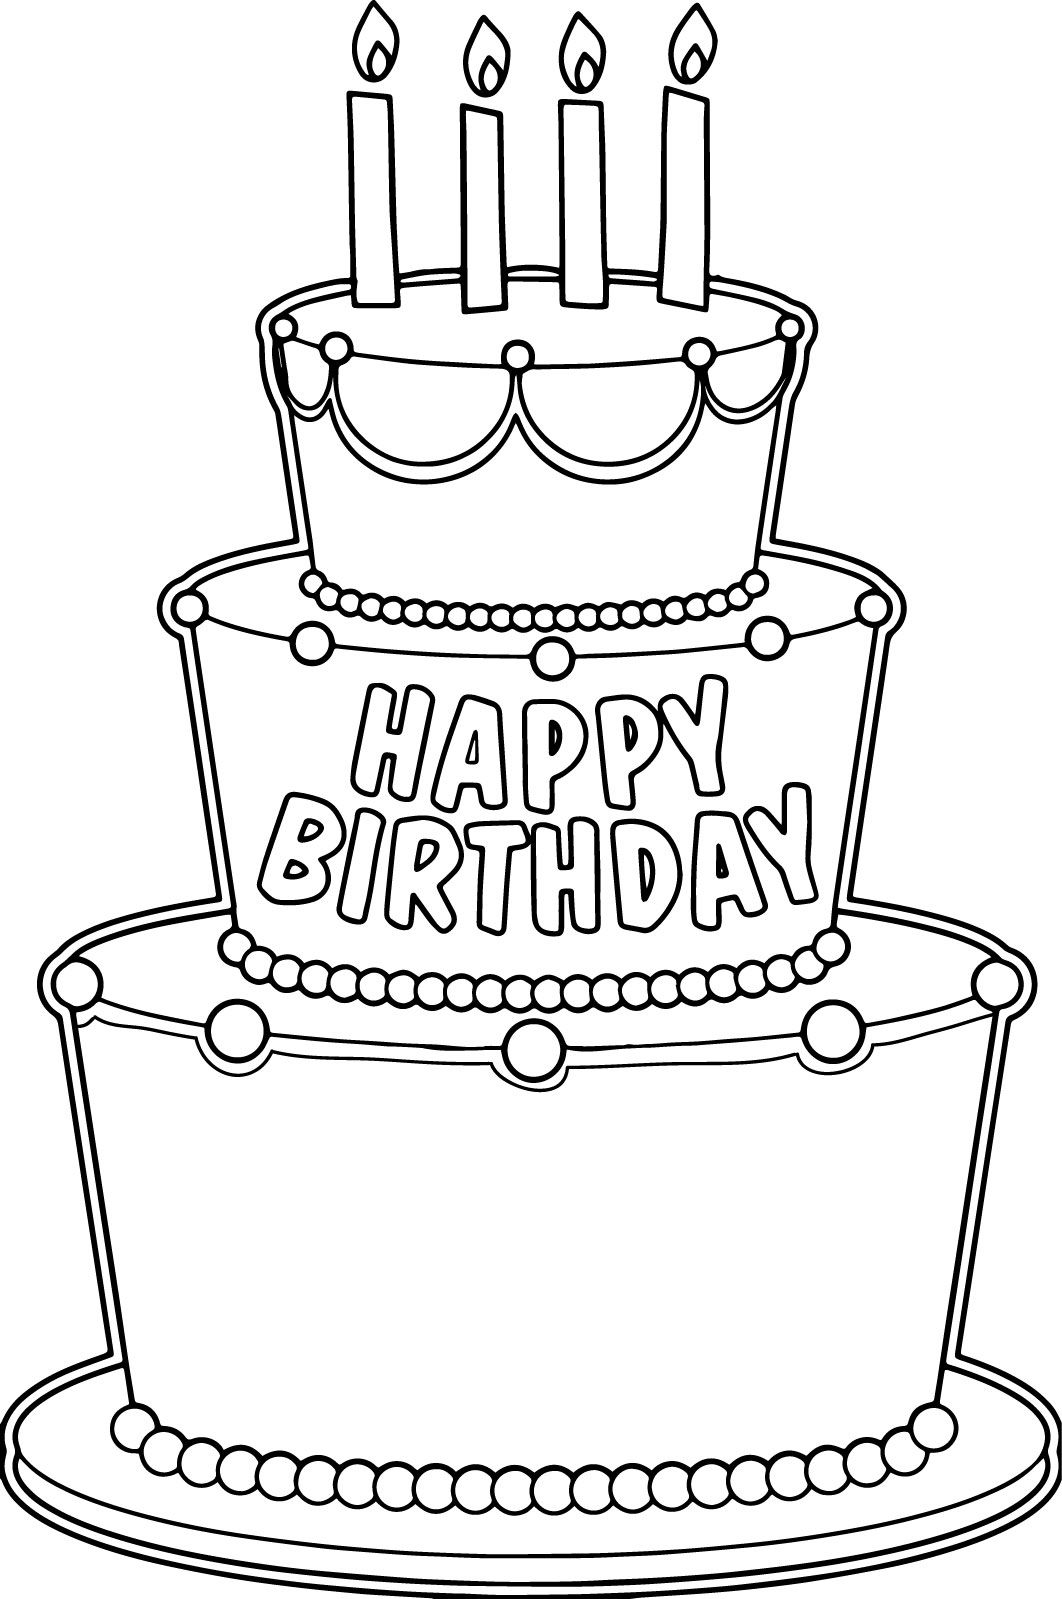 Nice Big Birthday Cake Coloring Page Birthday Coloring Pages Big Birthday Cake Happy Birthday Coloring Pages